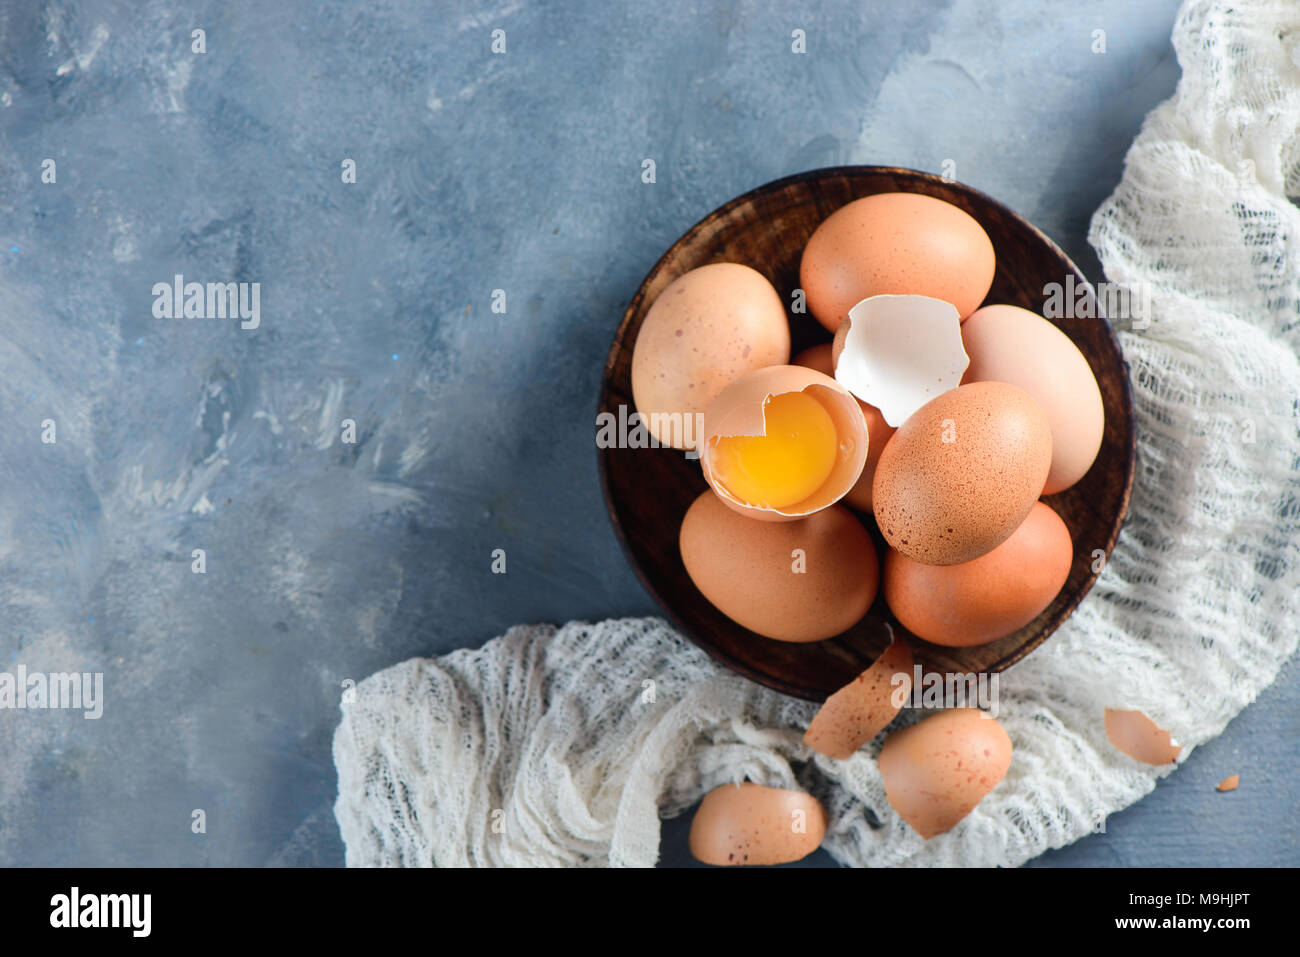 Fresh chicken eggs in a wooden bowl on a concrete background with white cloth. Organic ingredients concept with copy space. - Stock Image